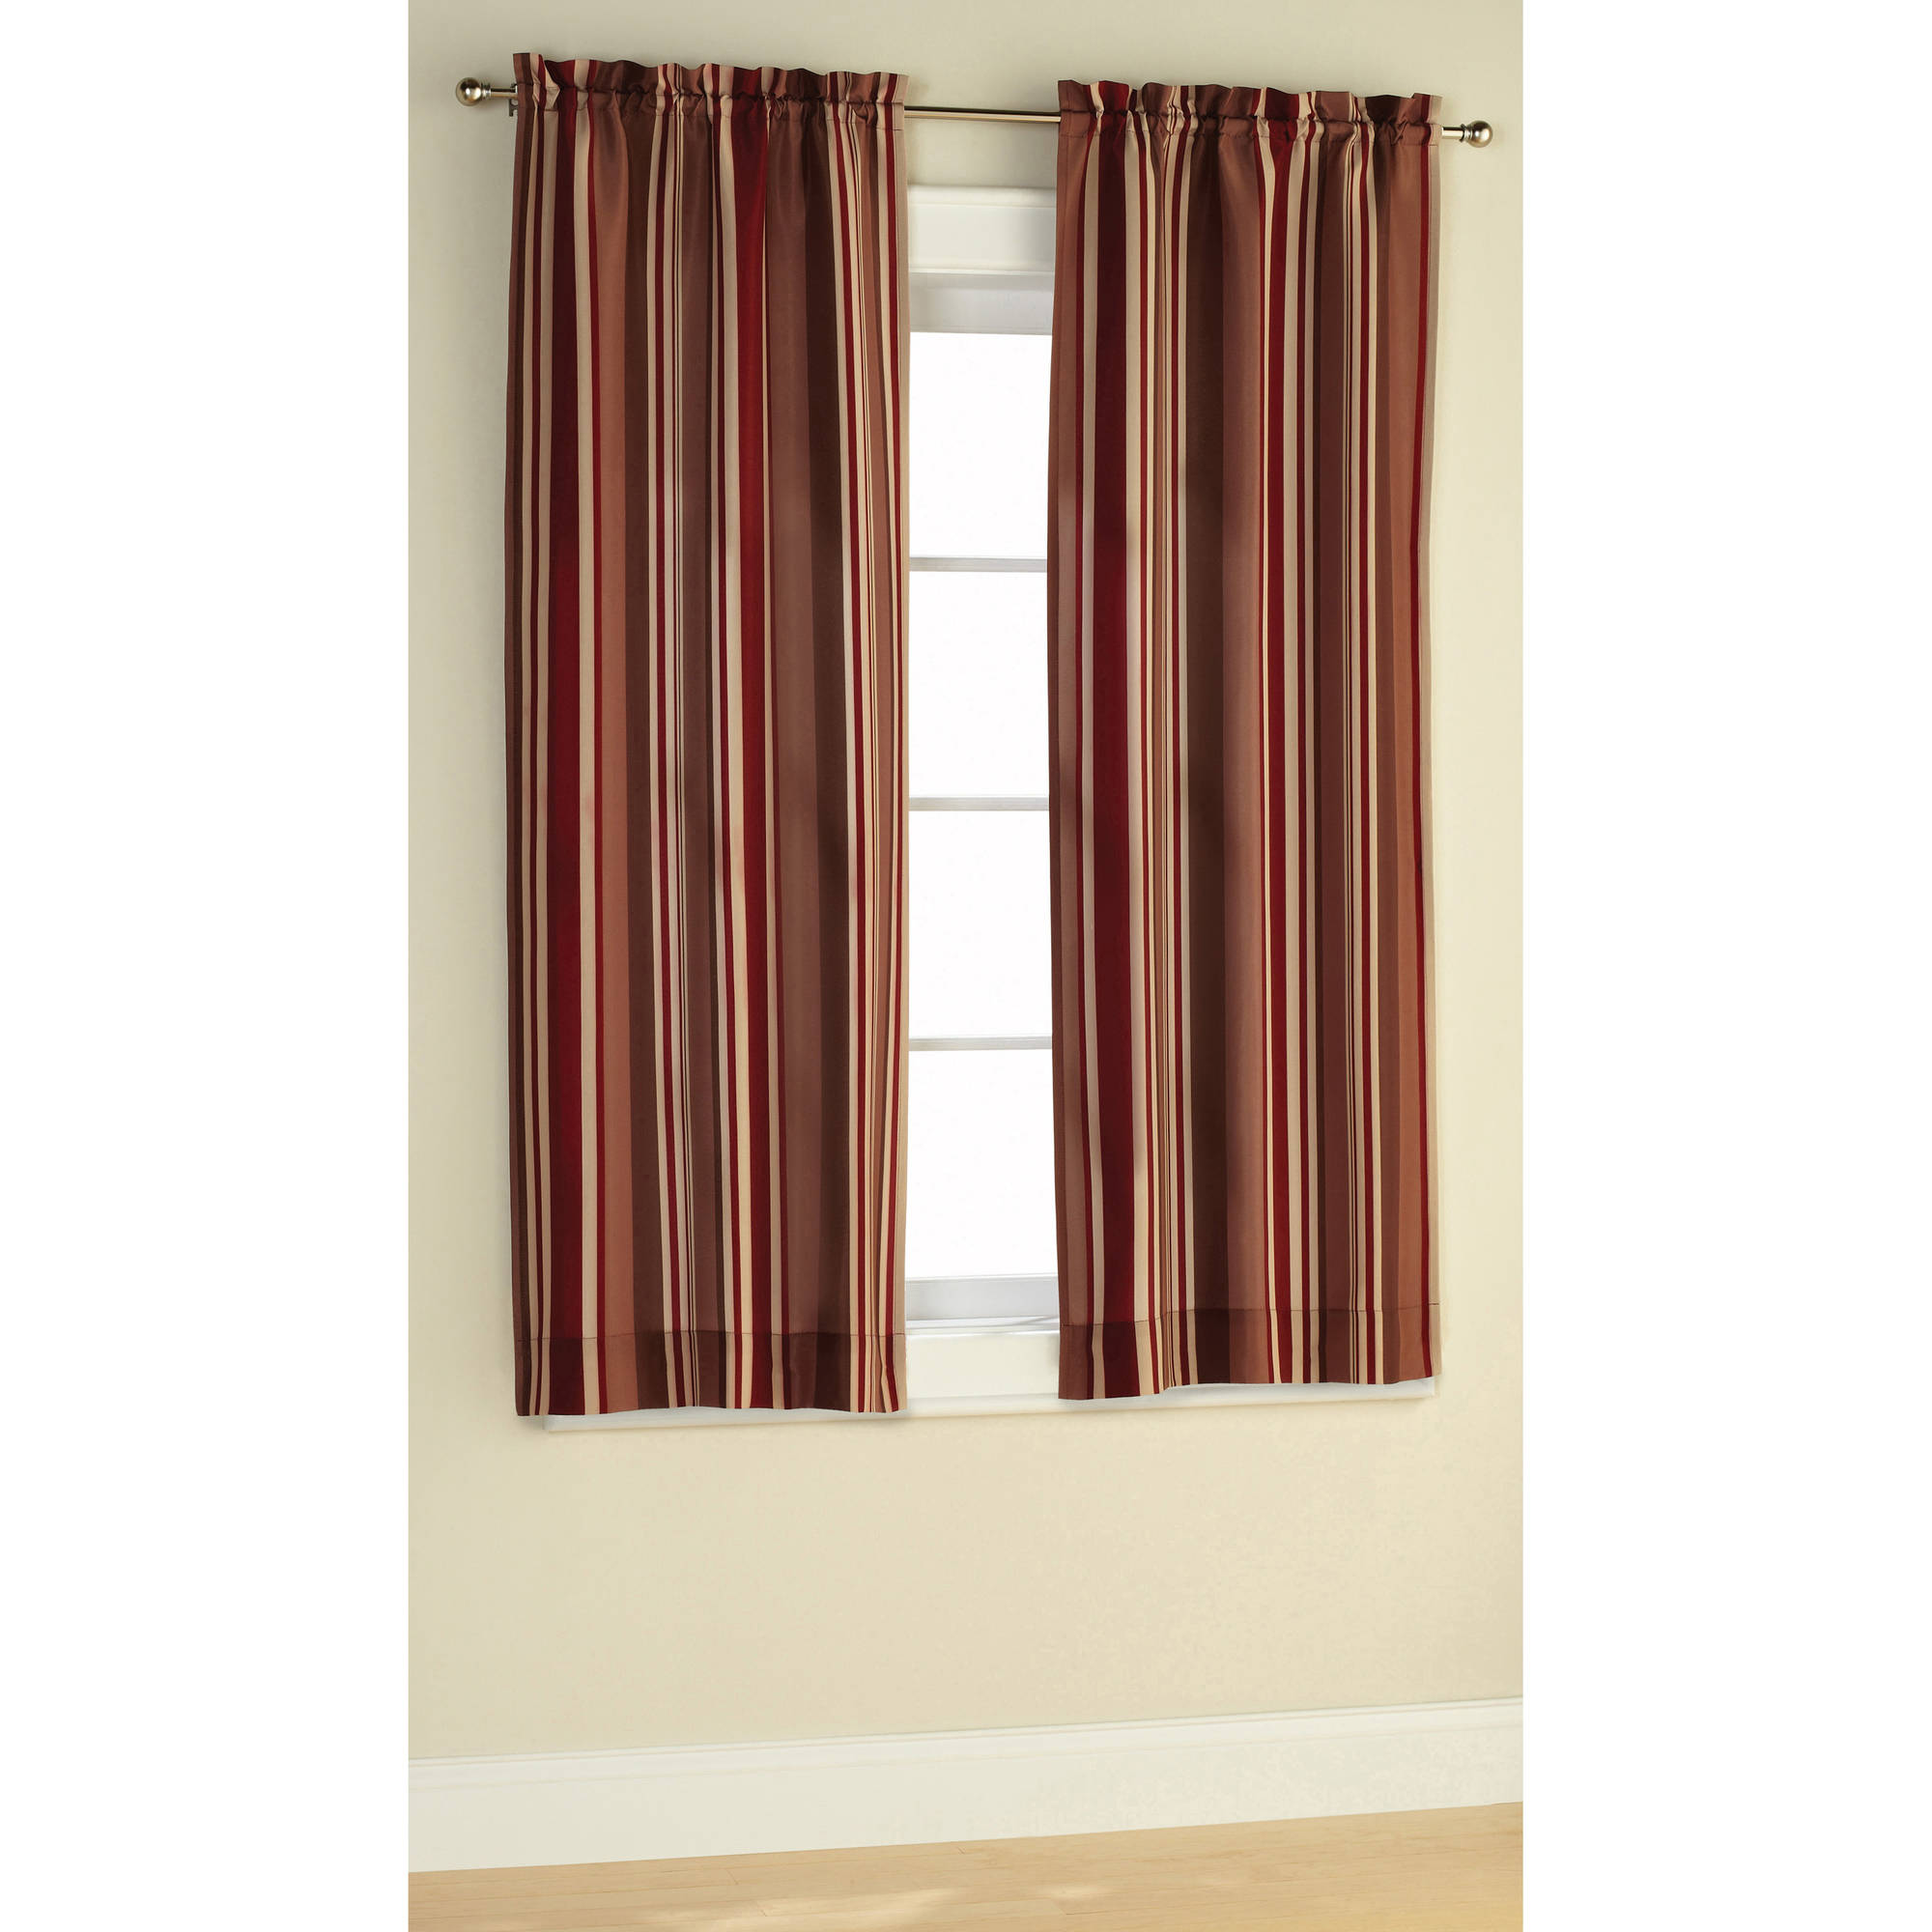 Mainstays Poly Duck Stripe Curtain Panel, Set of 2